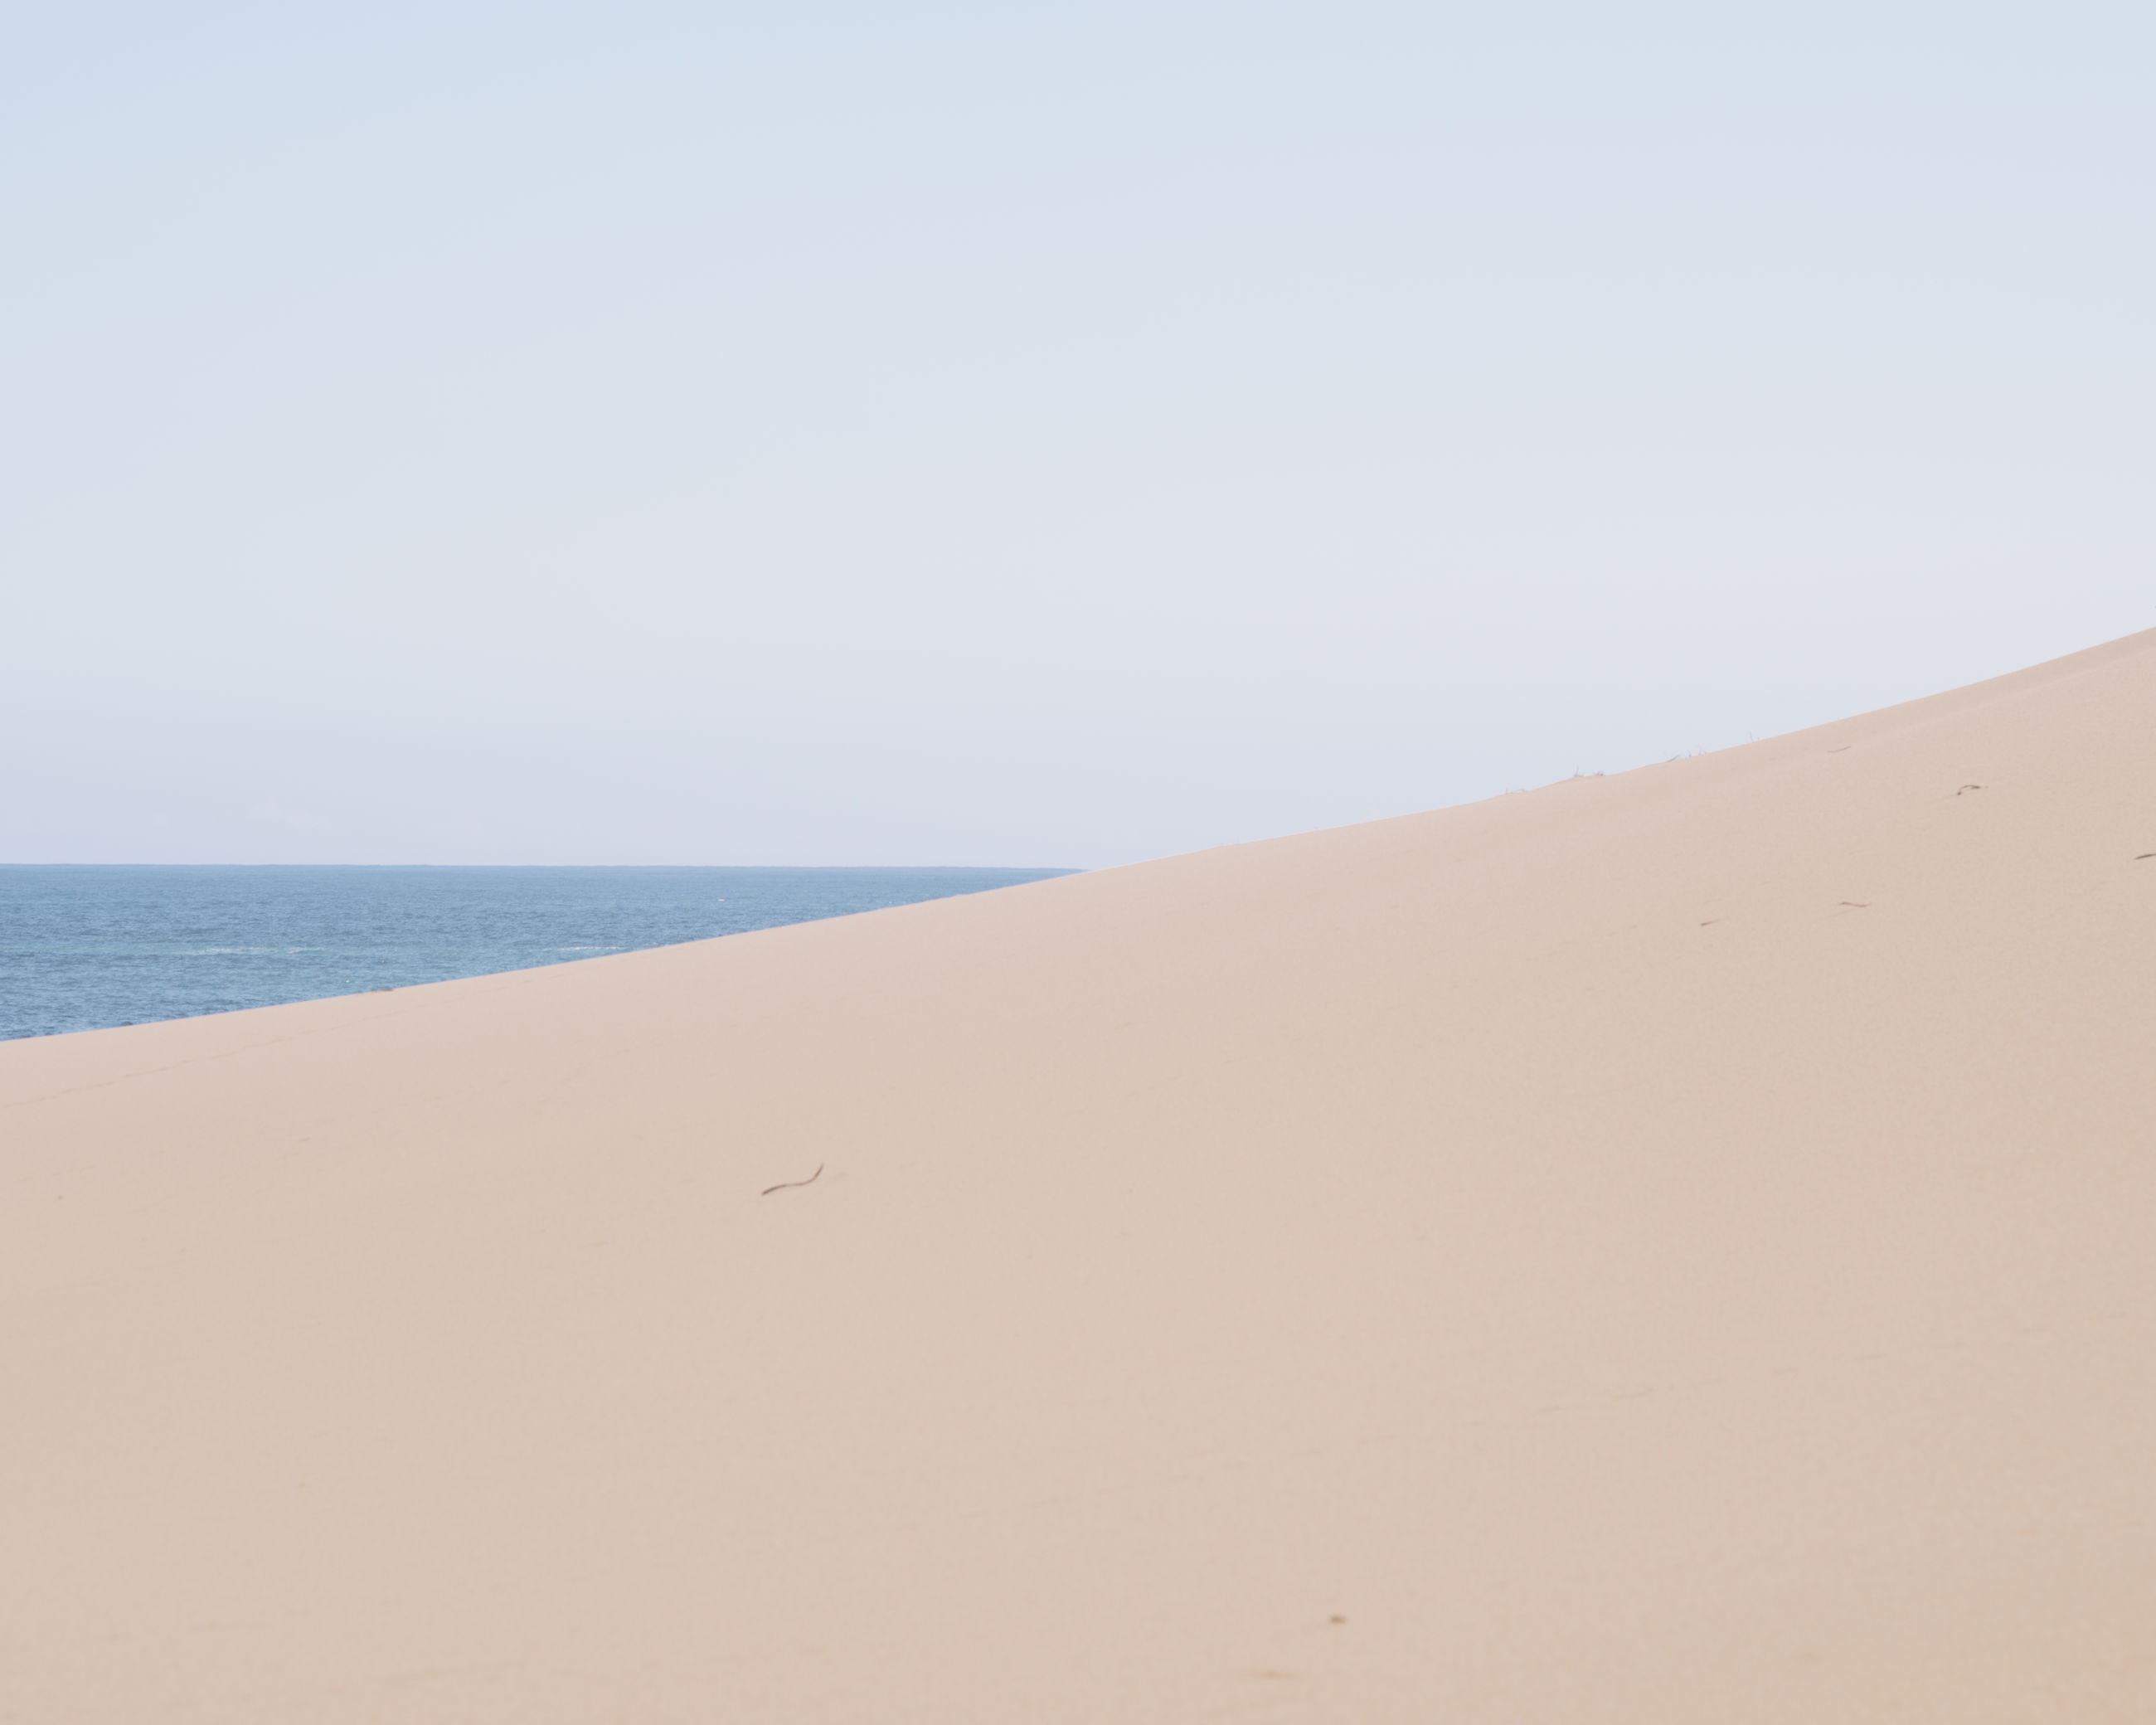 clear sky, copy space, beach, sea, sand, horizon over water, tranquil scene, tranquility, water, scenics, shore, beauty in nature, nature, idyllic, remote, coastline, day, non-urban scene, outdoors, calm